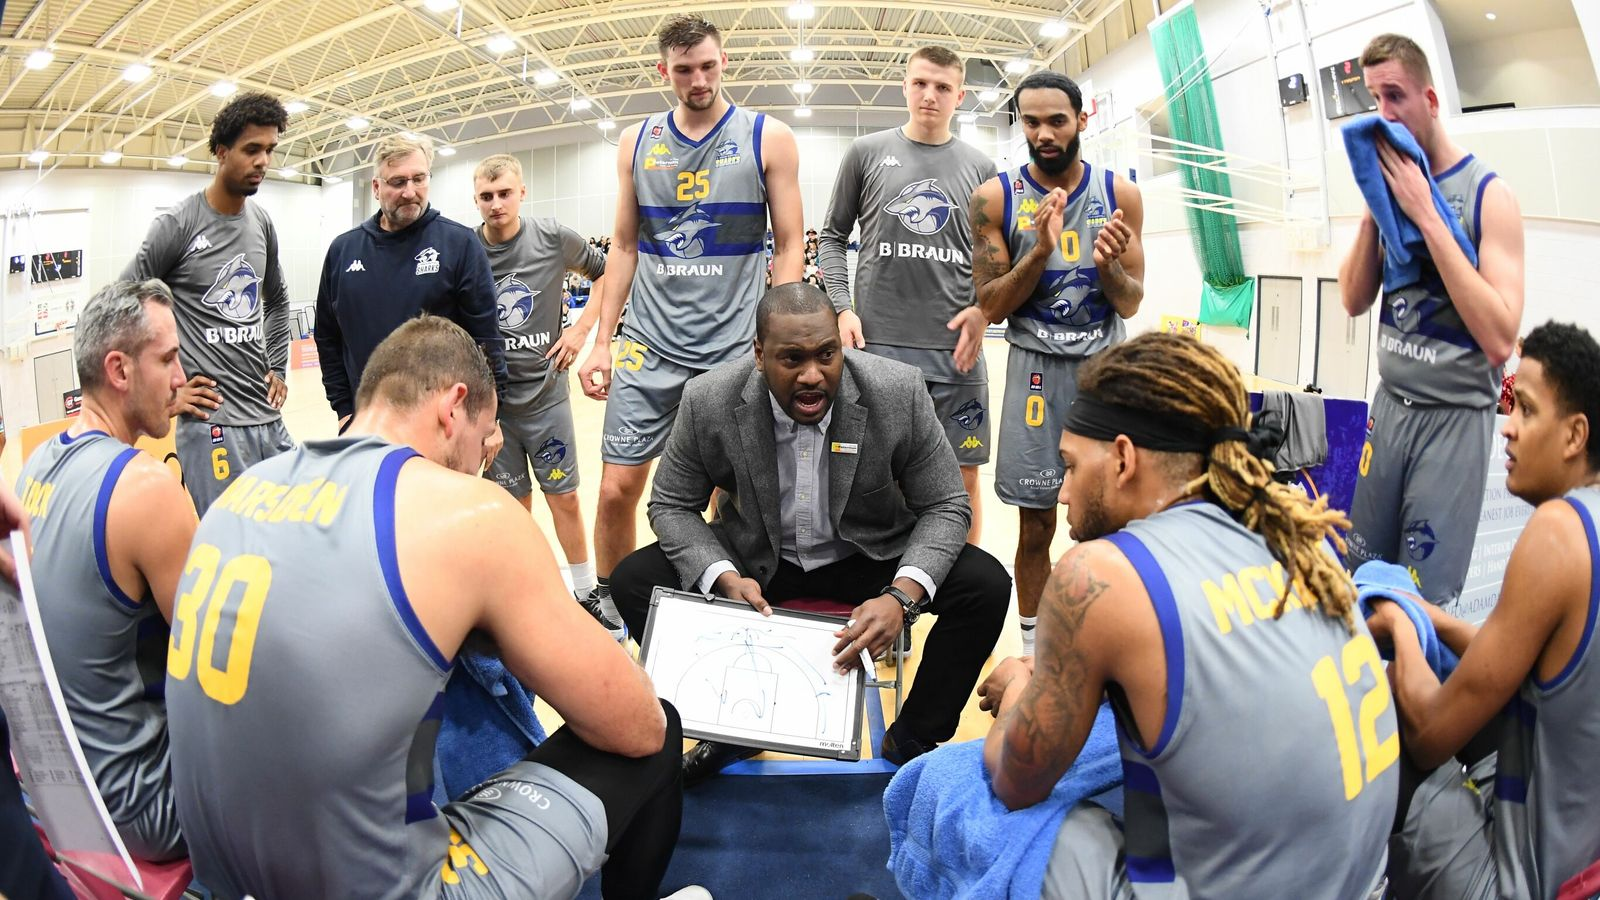 British Basketball League: All you need to know ahead of 2020-21 Championship